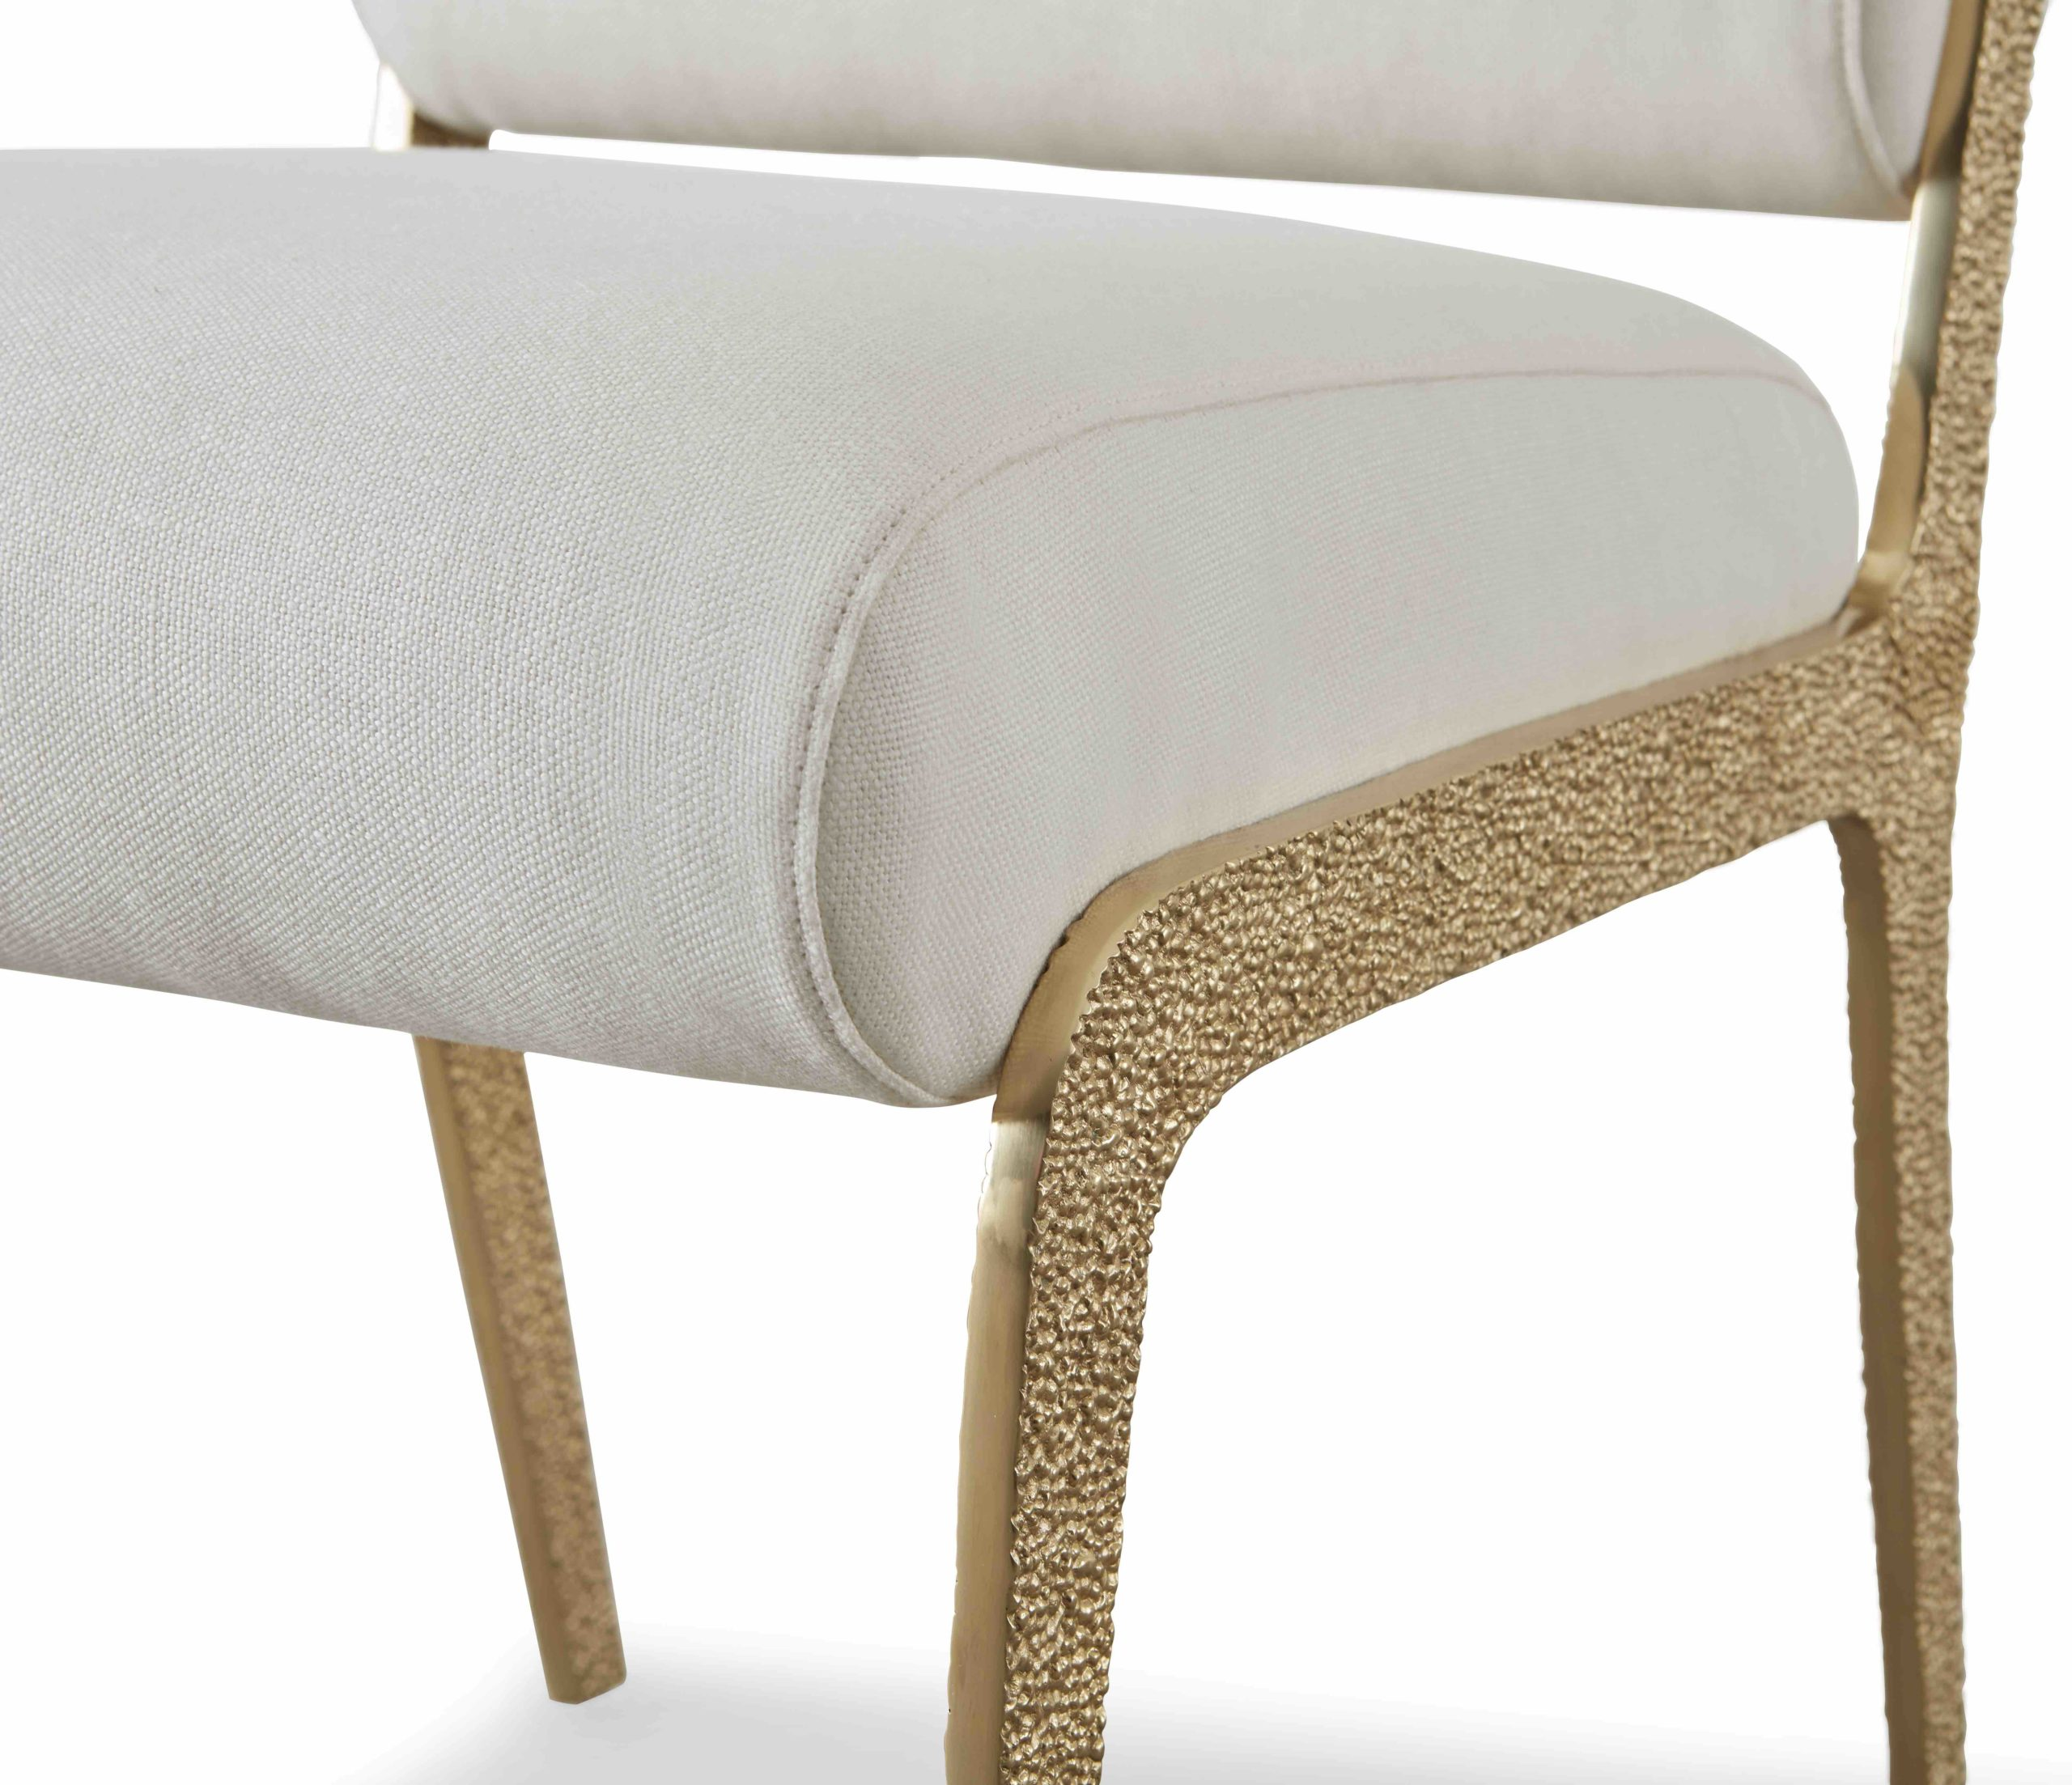 Baker_products_WNWN_lucca_chair_BAA3043_DETAIL-scaled-2